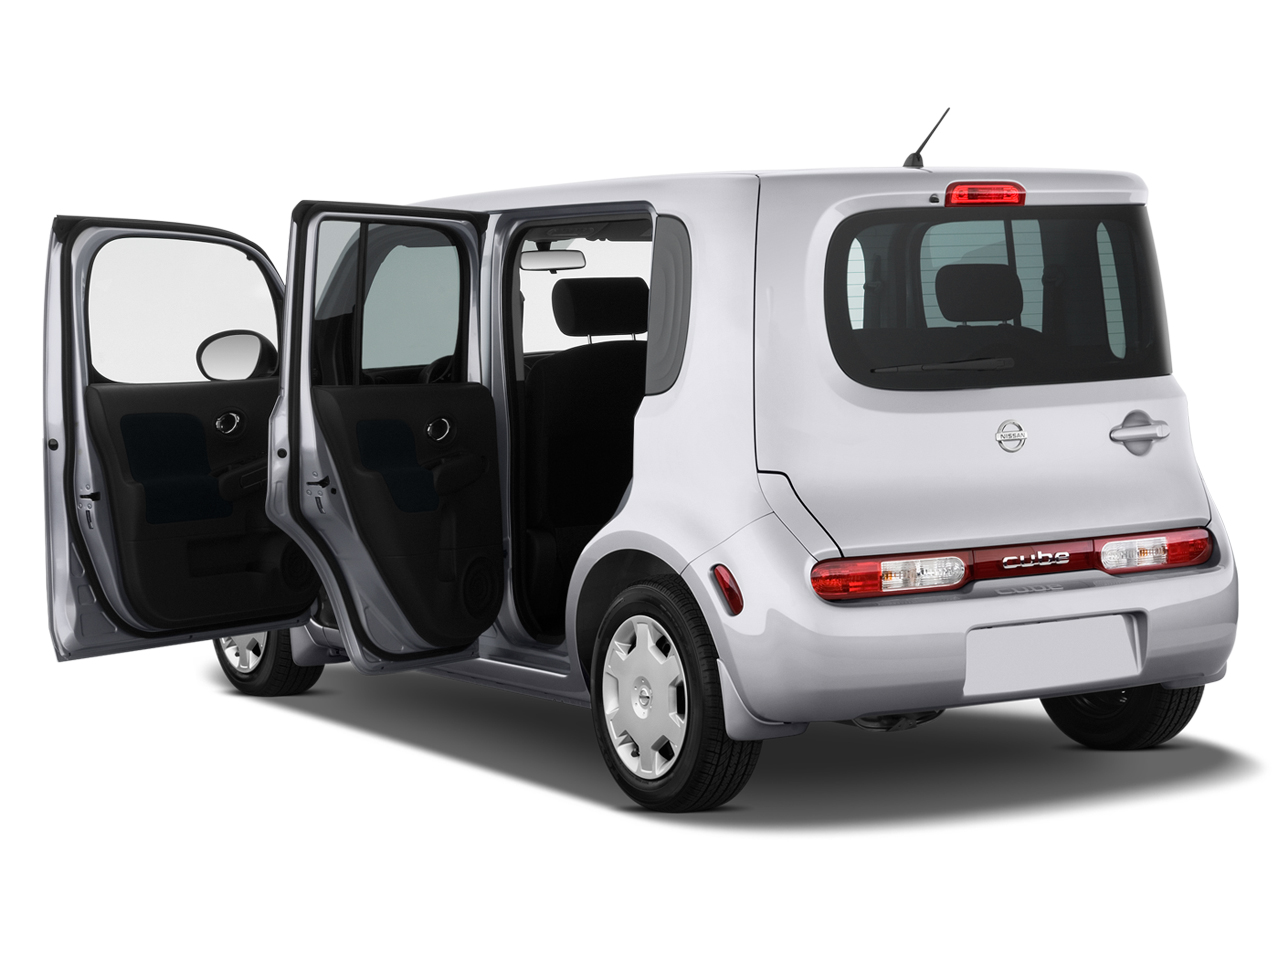 2009 Nissan Cube - Small European Cars, Fuel Efficient ...